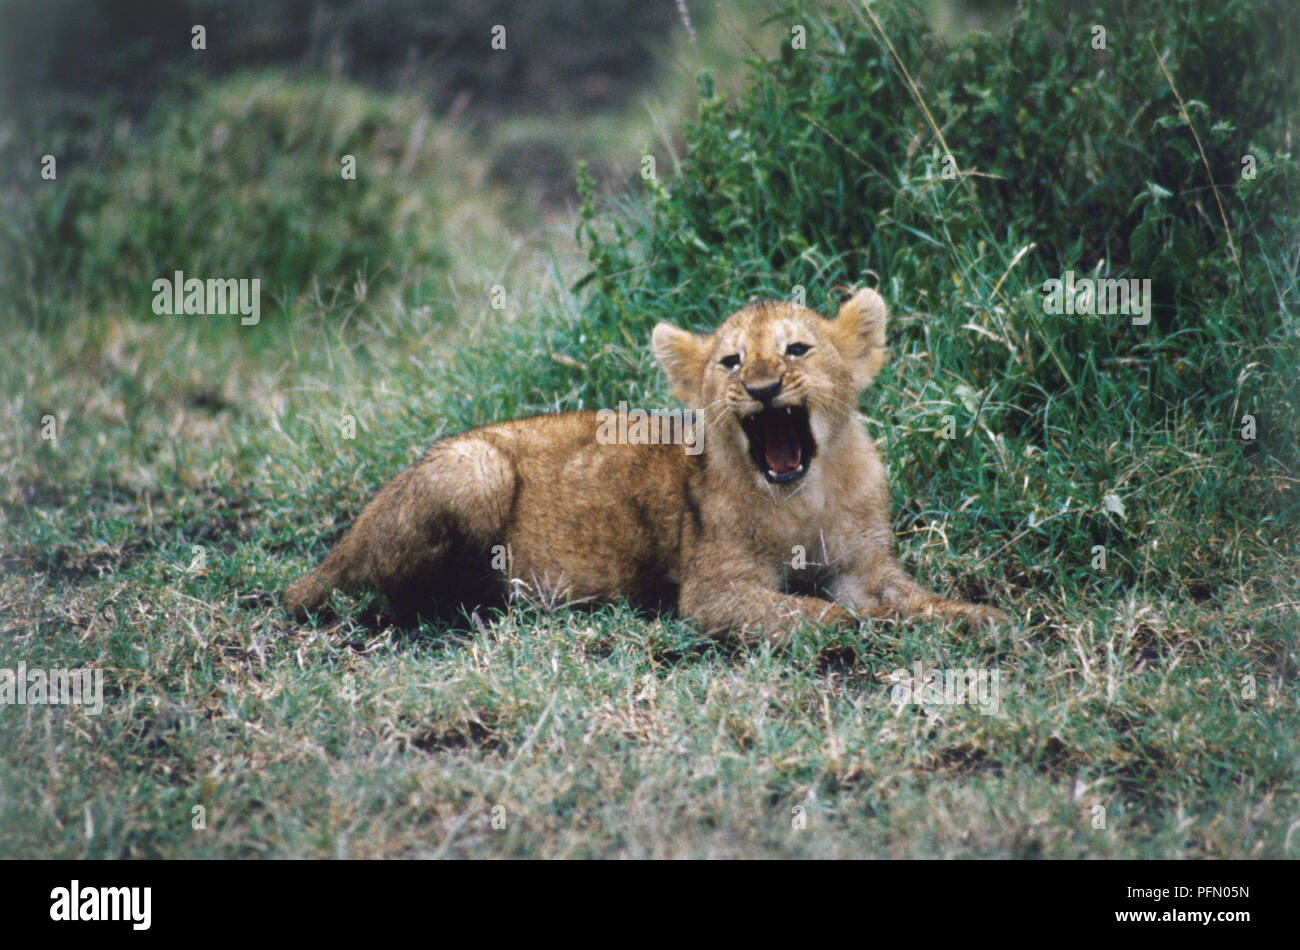 Lion cub, Panthera leo, lying down, yawning, open mouth exposing several teeth and pink tongue, thick golden and black fur, grass surrounding. - Stock Image